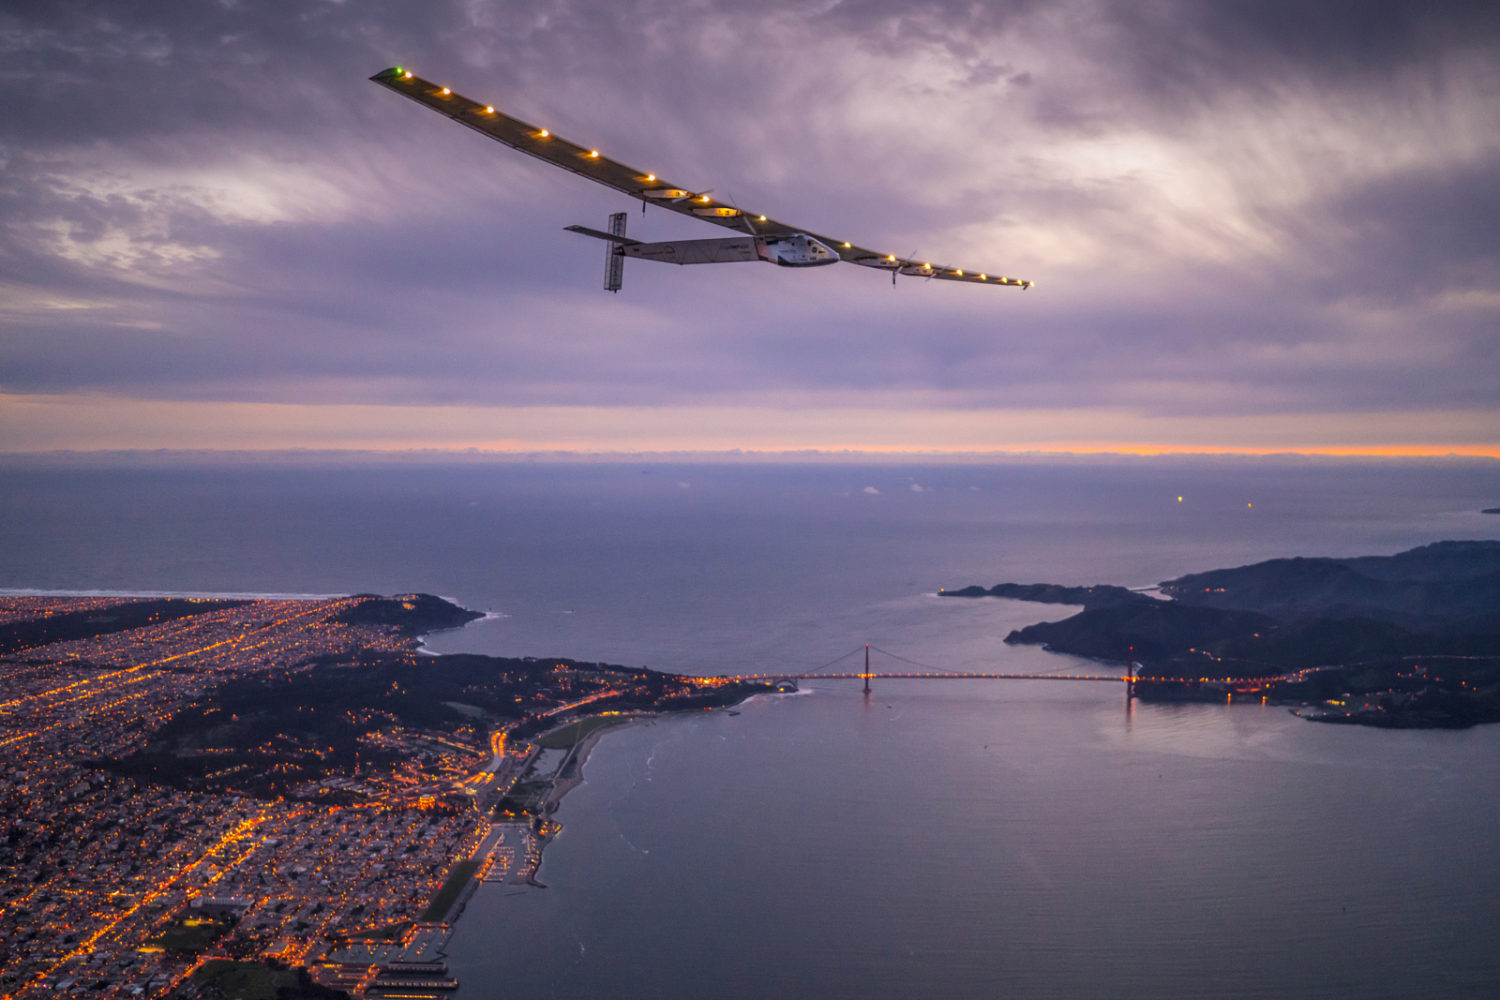 A Day in the Life of Solar Impulse Team, Flying Around the World With Zero Fuel